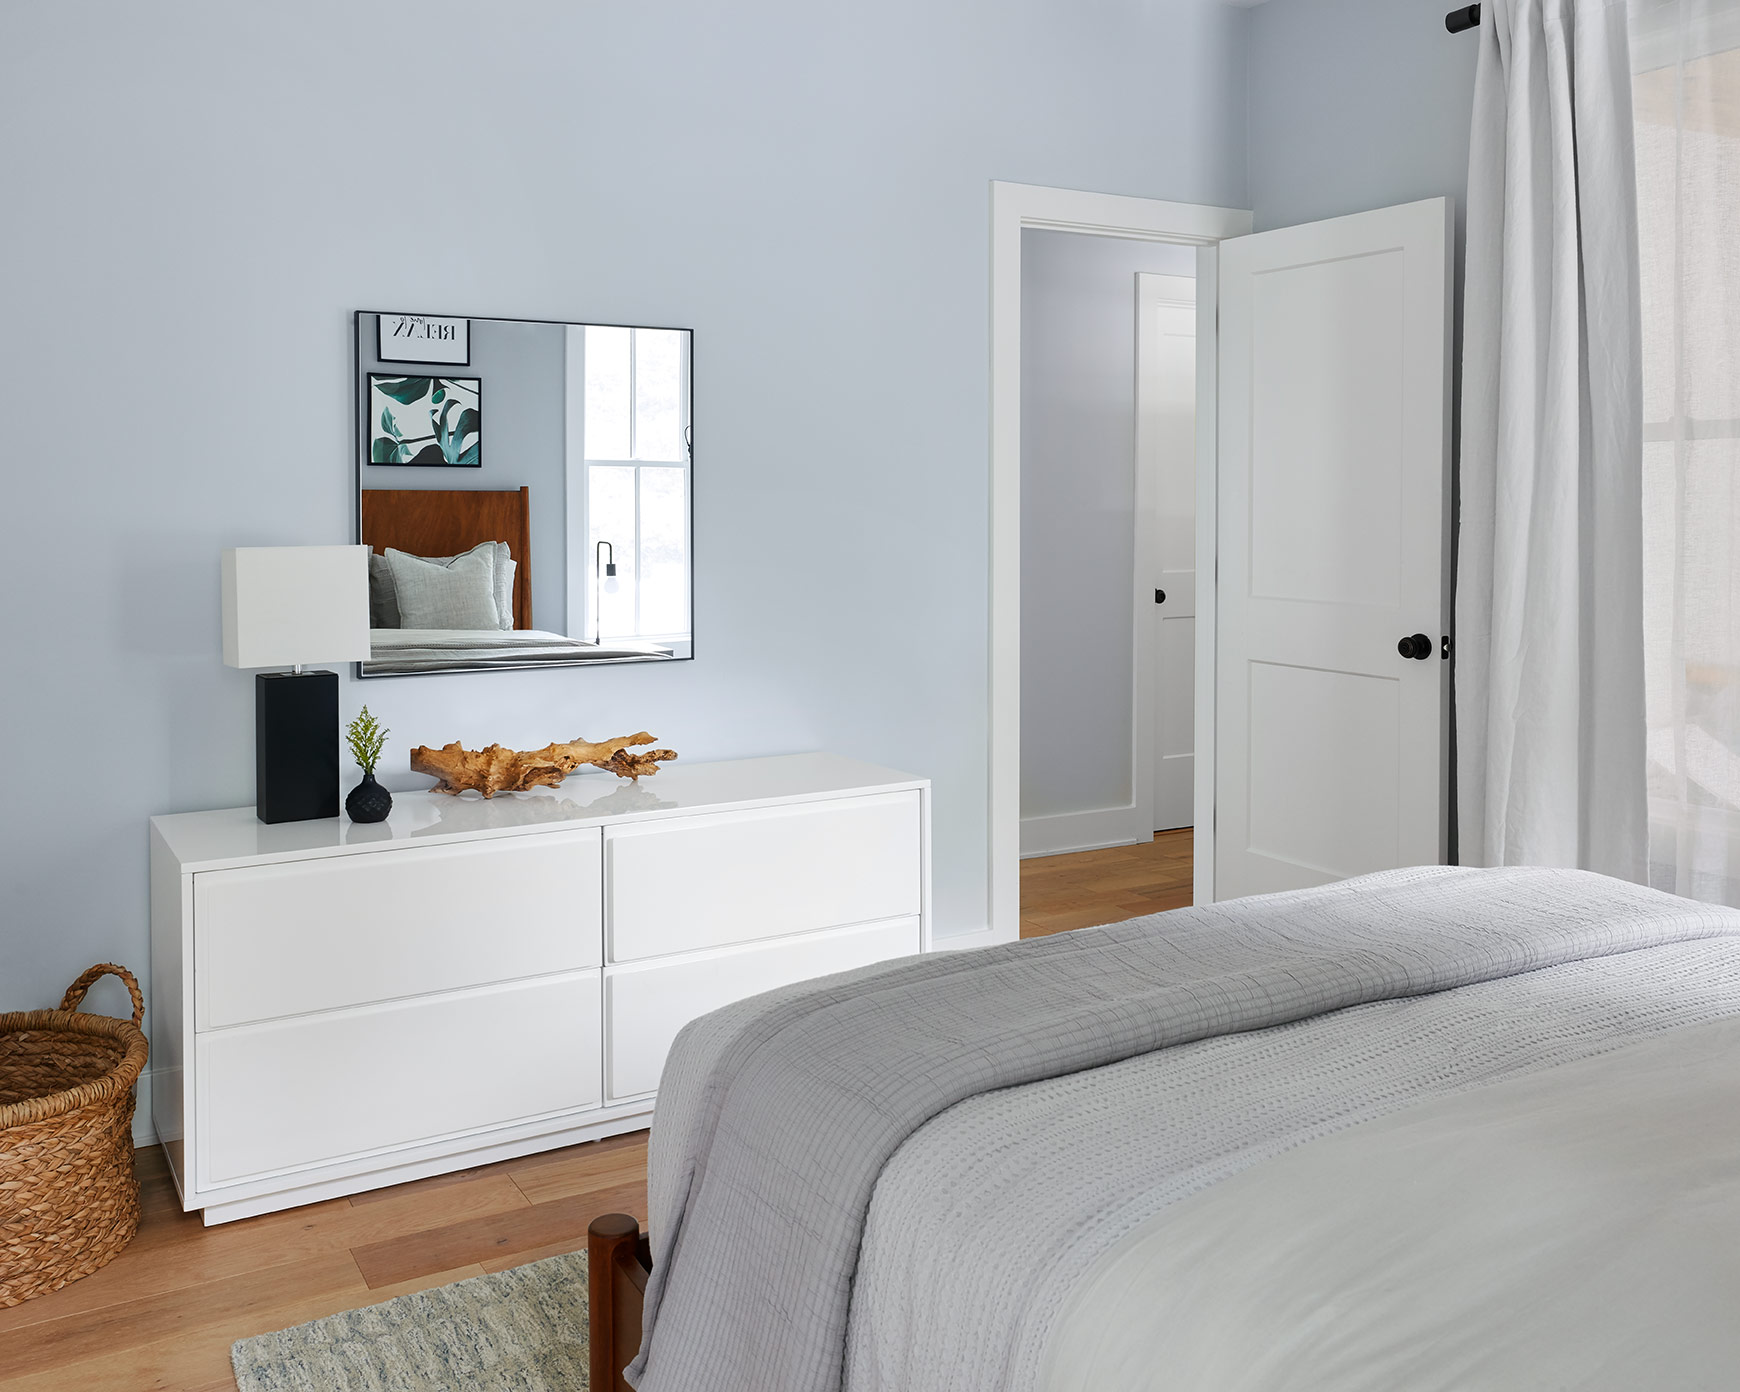 Opposite the bed, a crisp white lacquer dresser completes the room with natural textures to add contrast and interest.